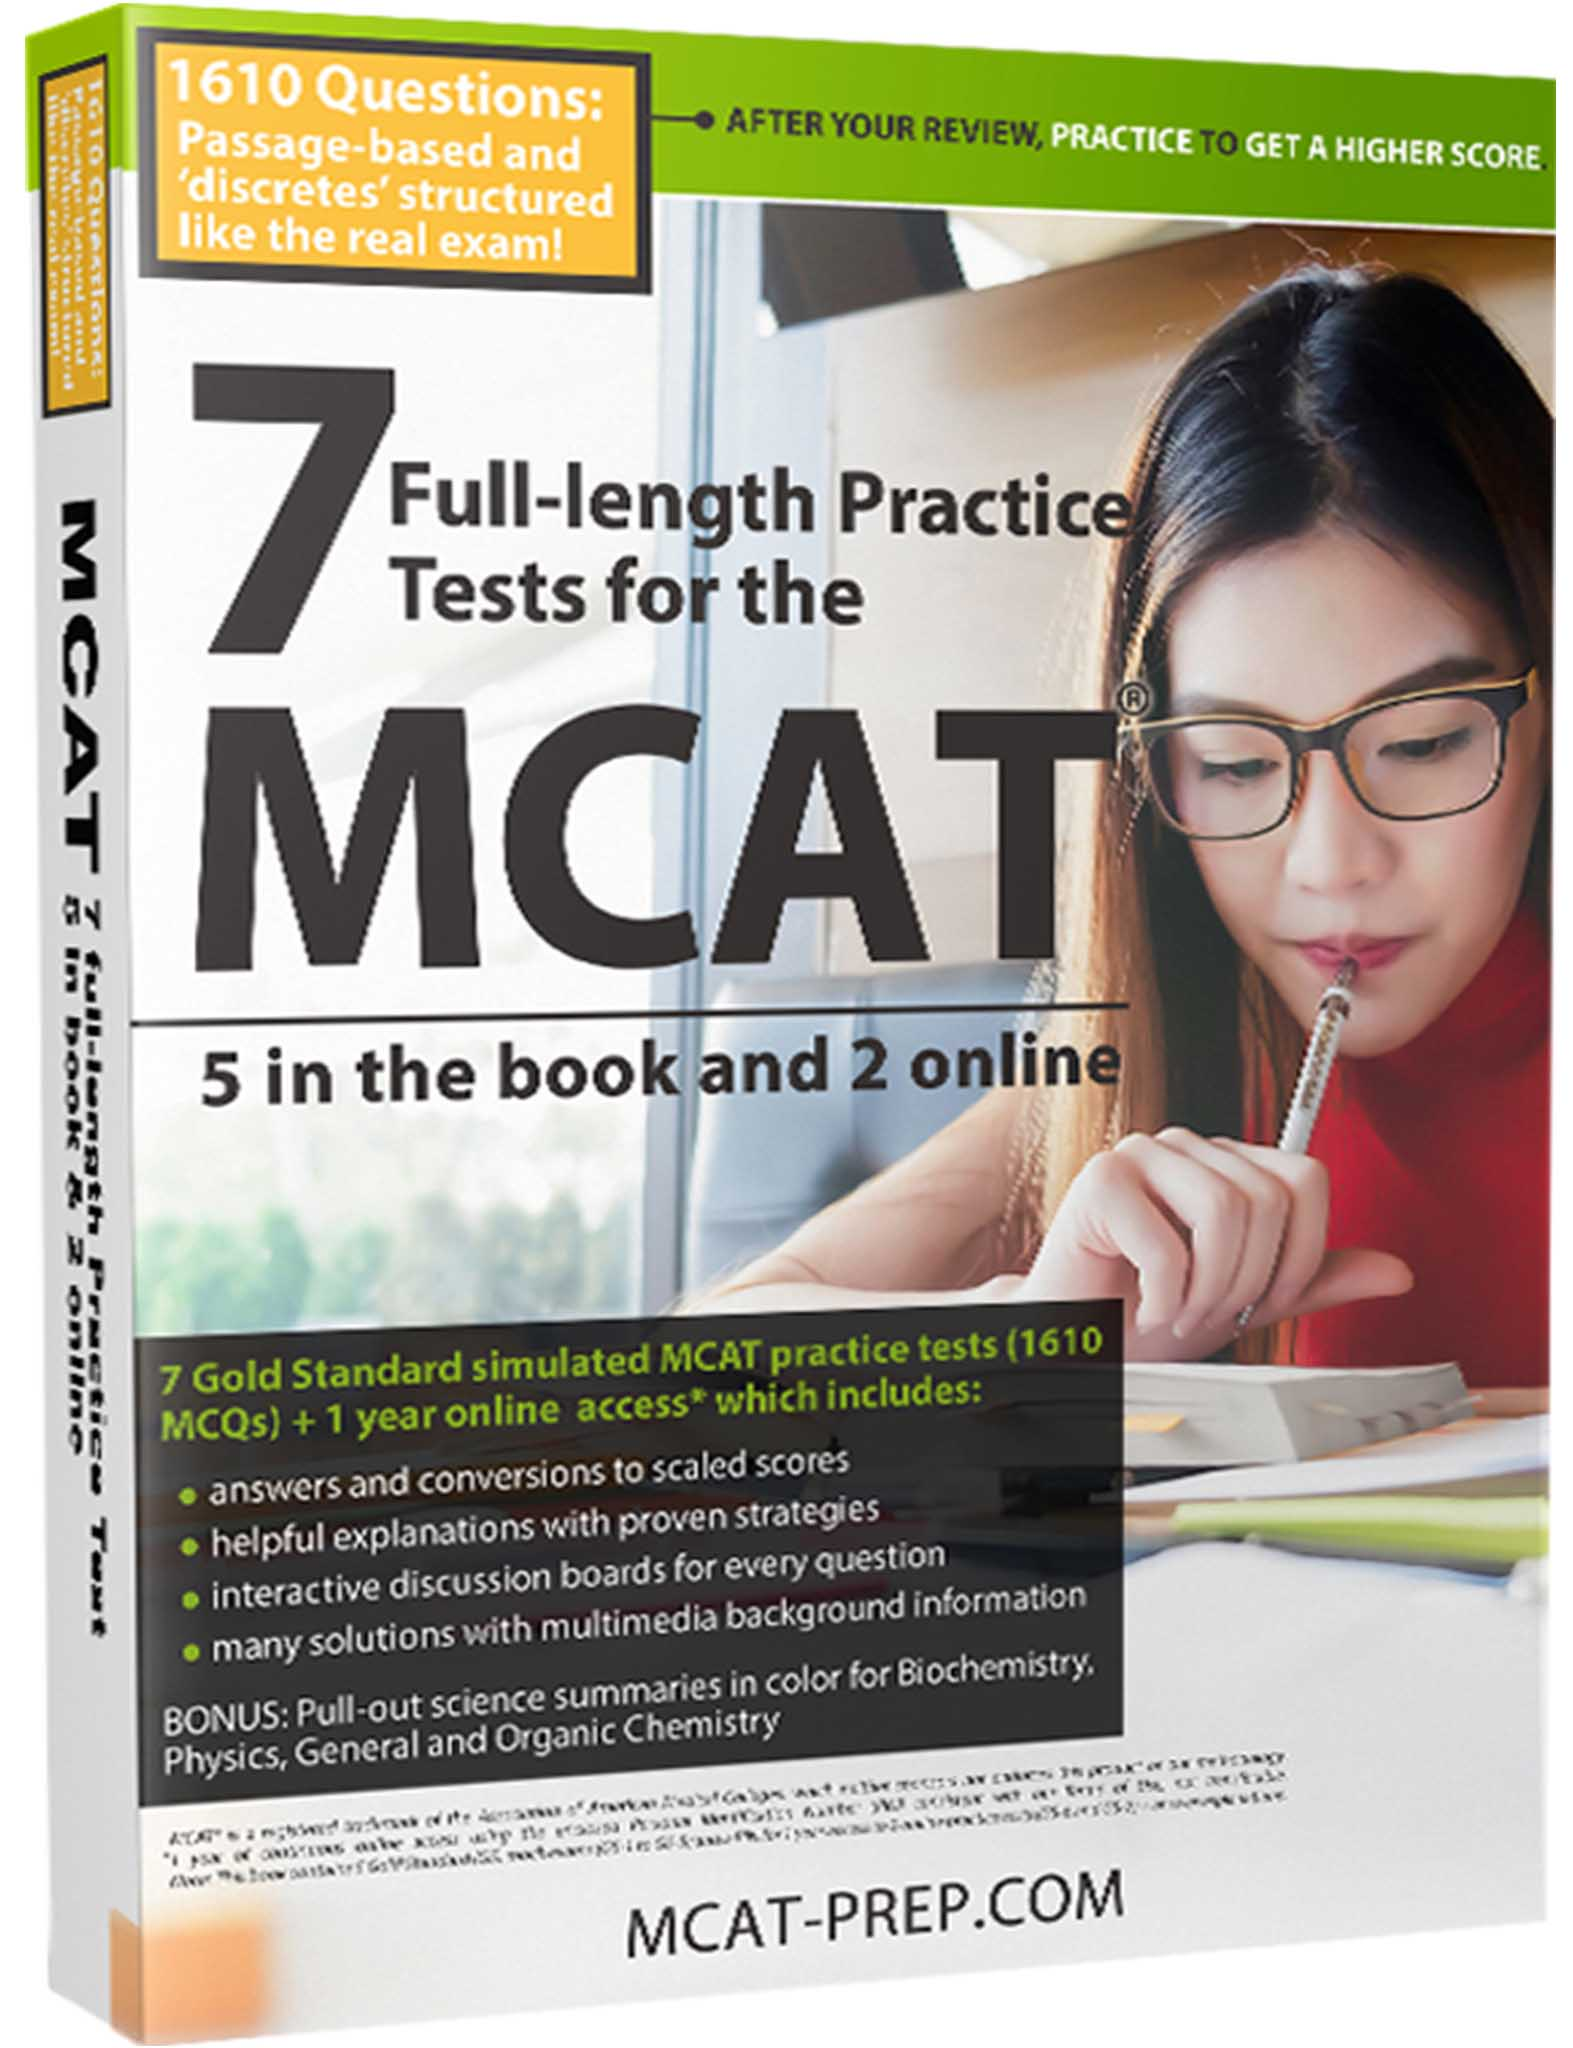 Best MCAT practice questions book for your MCAT preparation